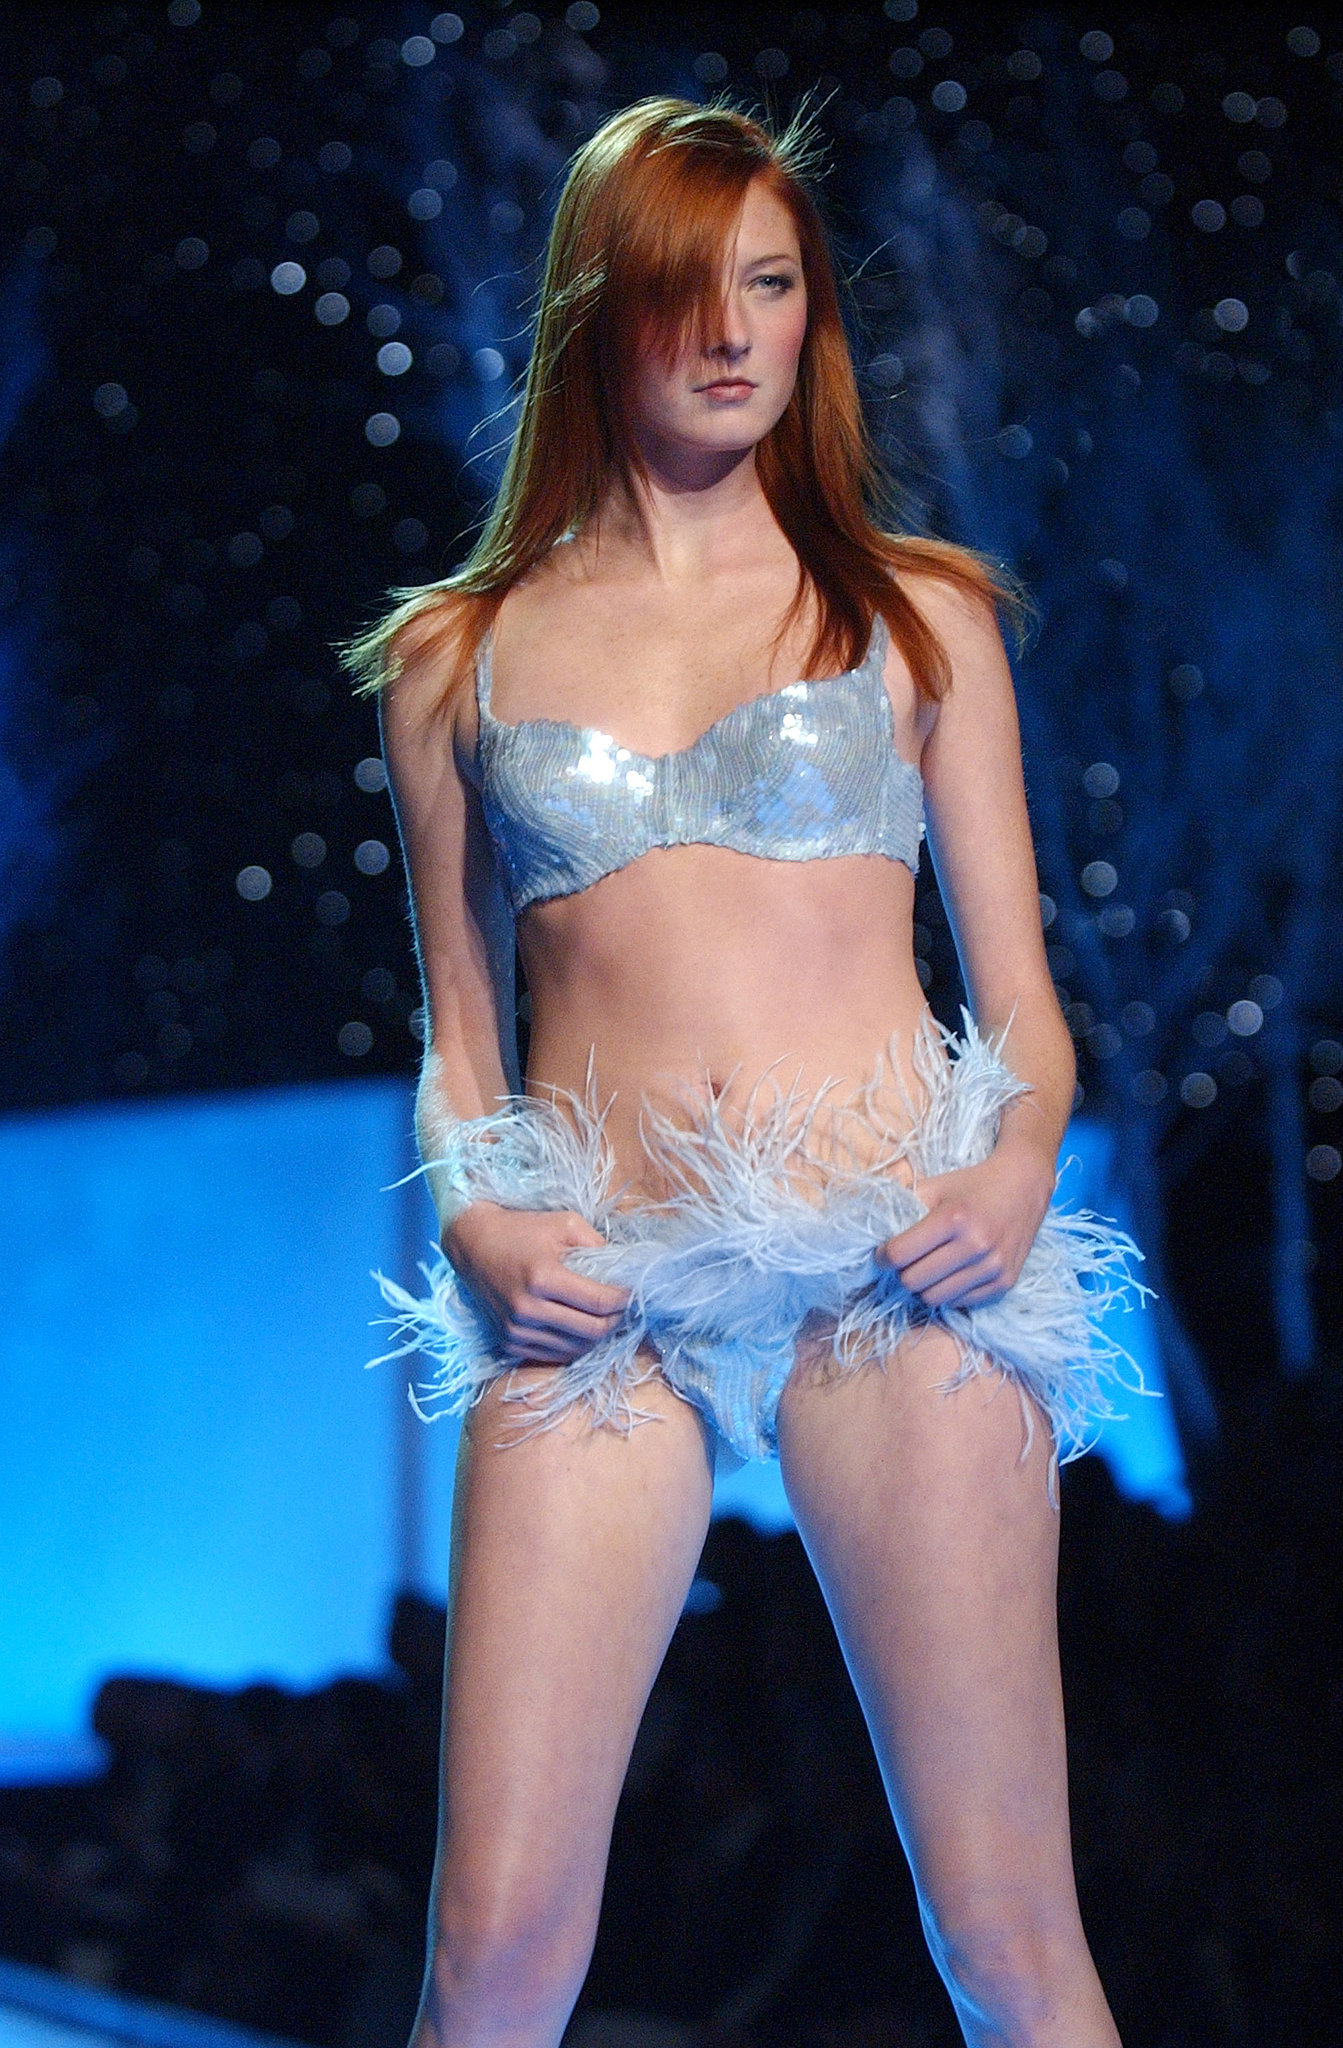 Maggie Rizer wore an ice-blue lingerie look in 2001.